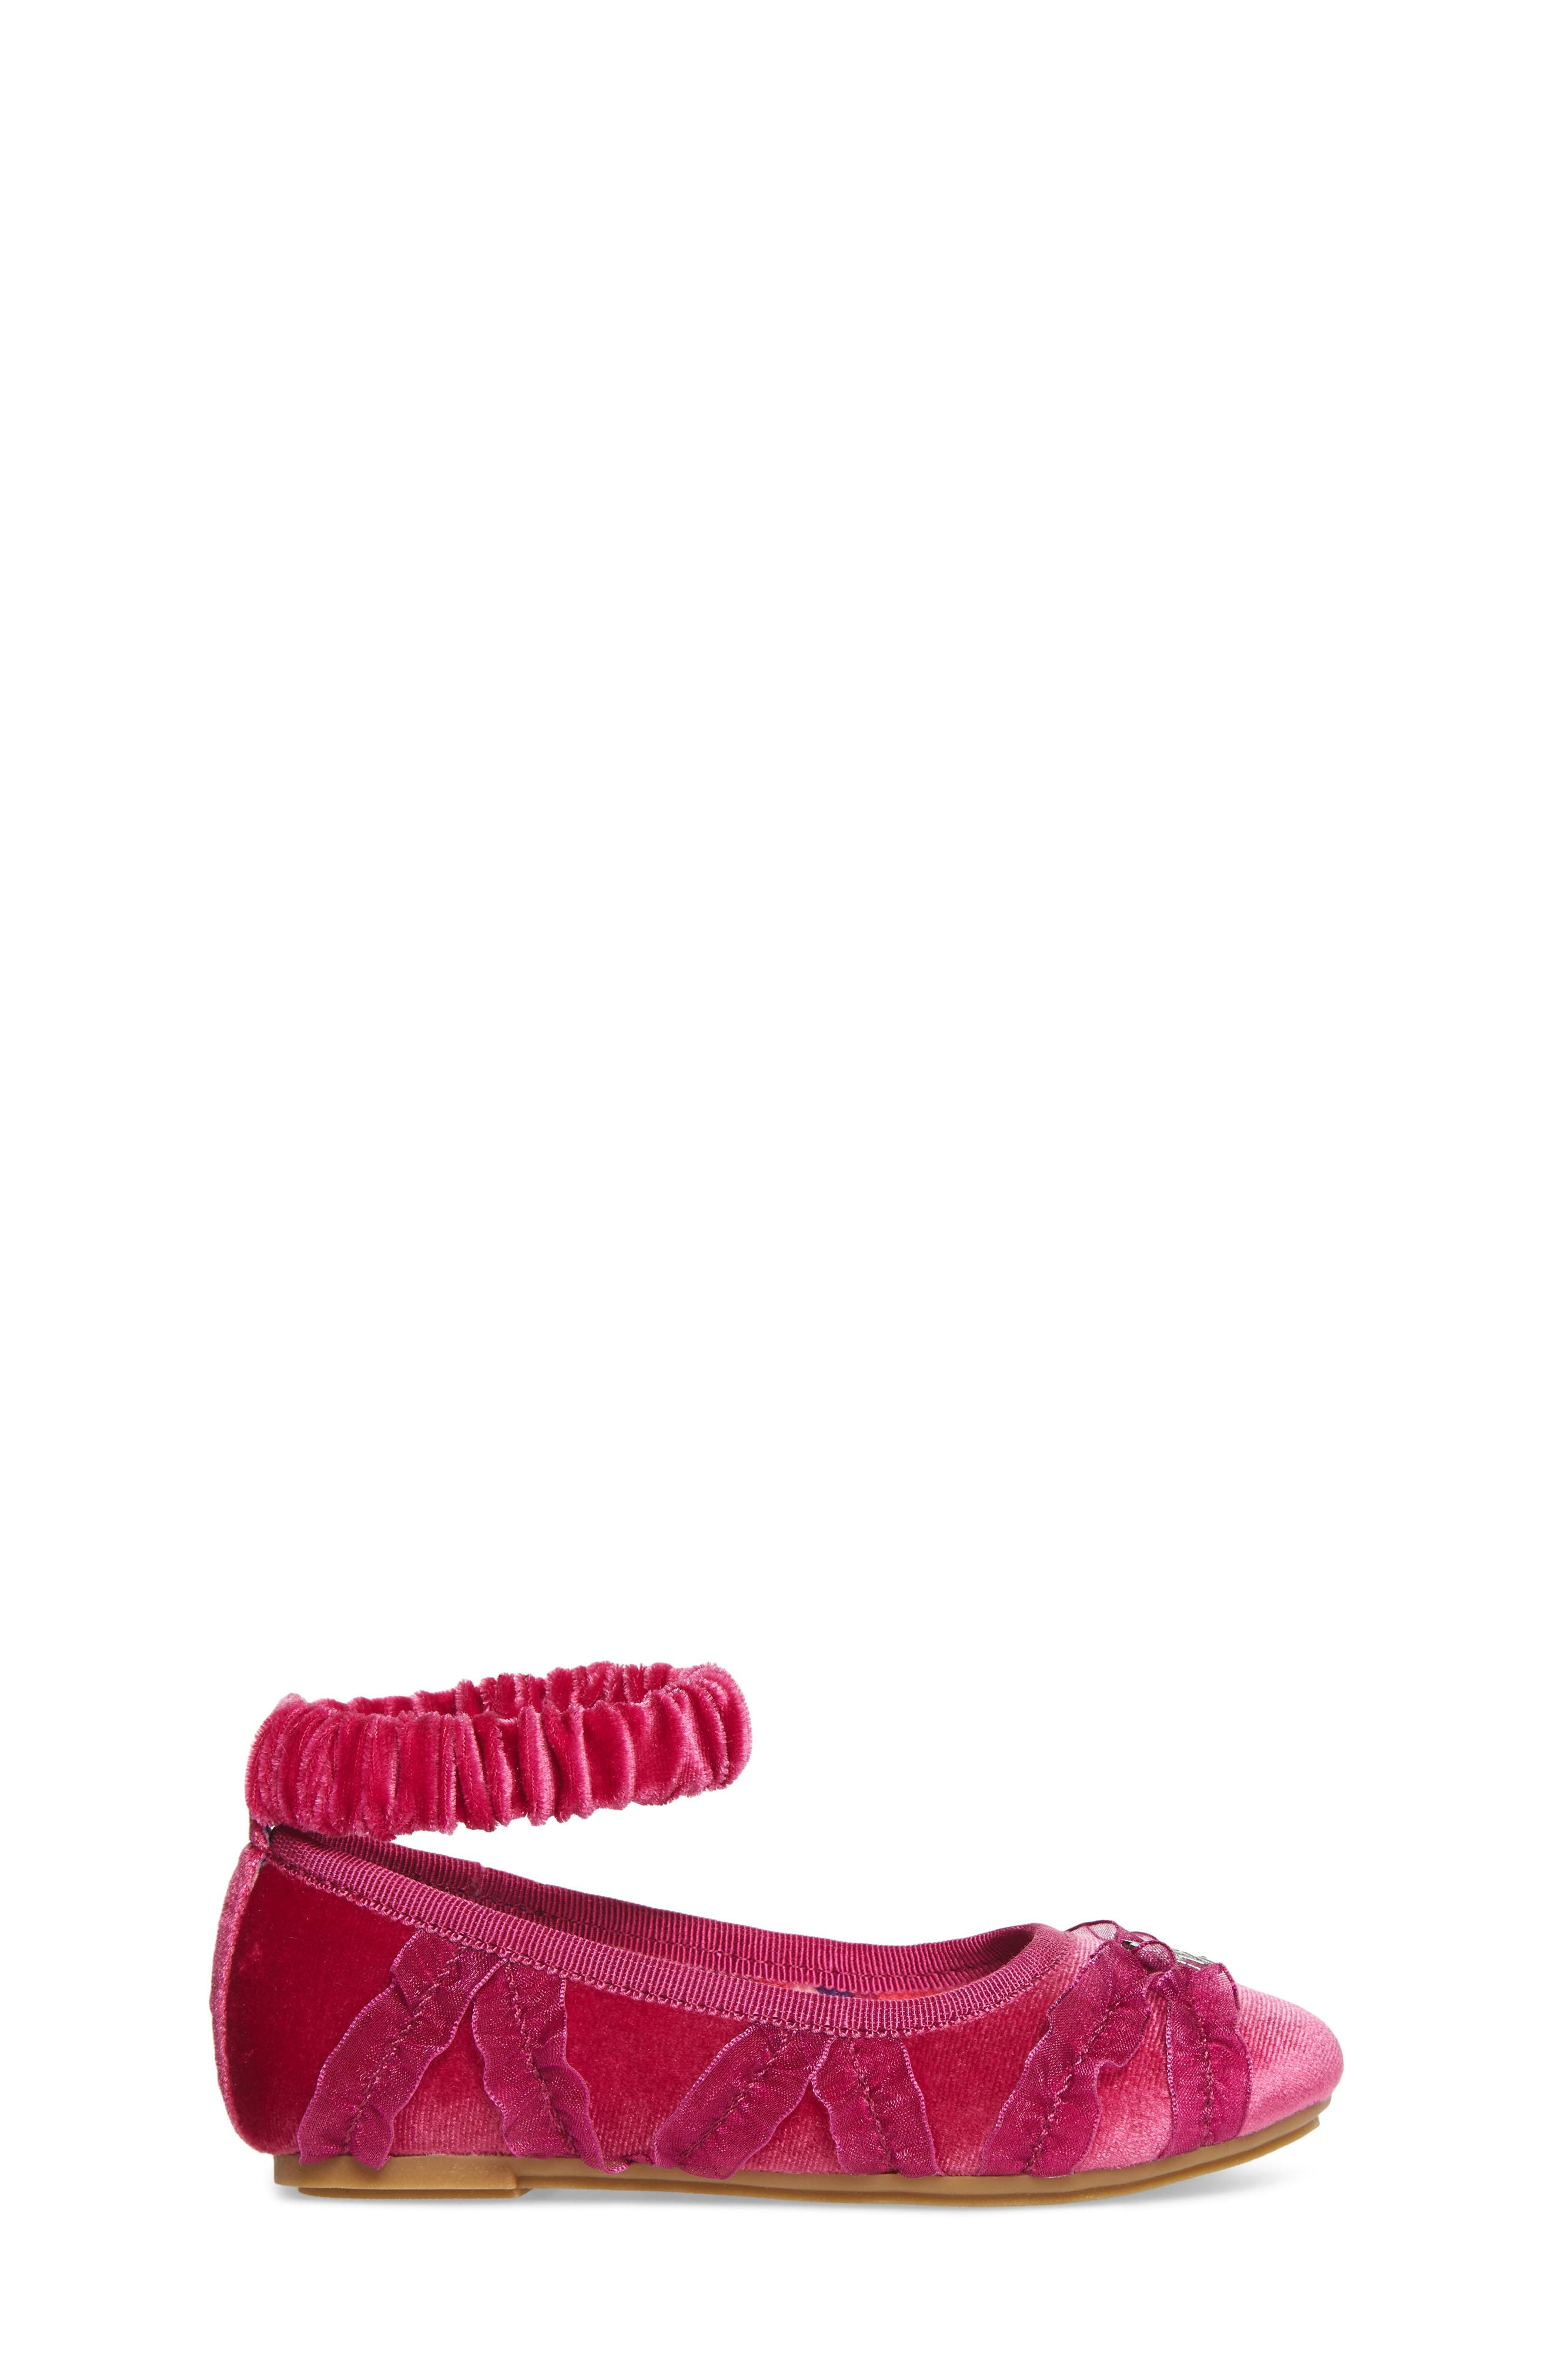 Emerson Ankle Strap Ballet Flat,                             Alternate thumbnail 3, color,                             Pink Multi